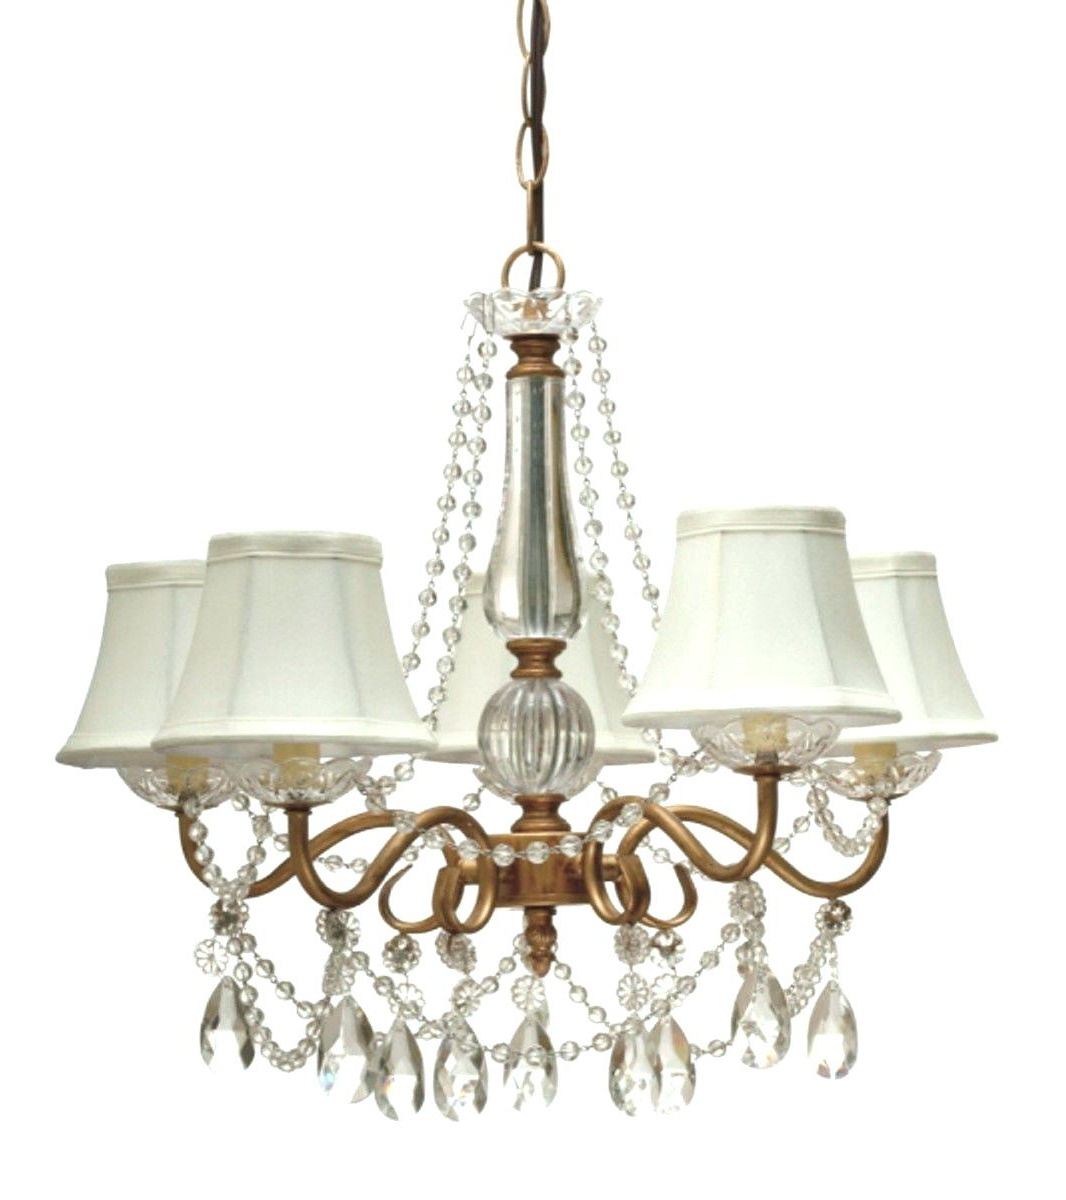 Popular Lampshade Chandeliers Intended For Light : Chandelier Fabric Sophia Crystal With White Shade W X H (View 12 of 20)